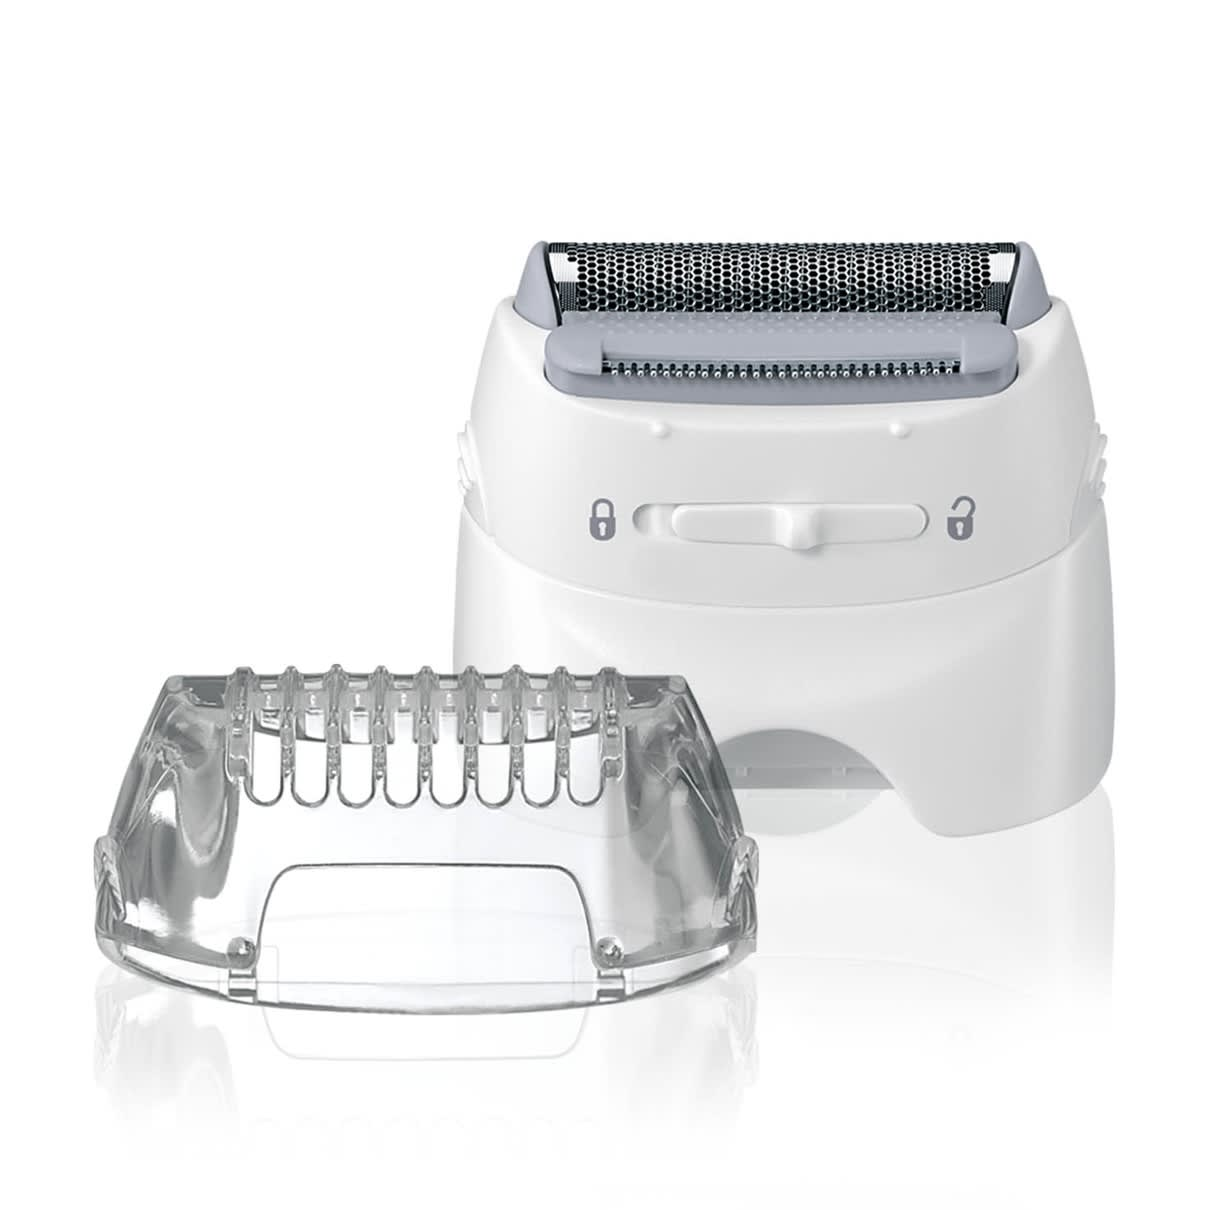 Braun Silk-épil shaver head with trimmer cap